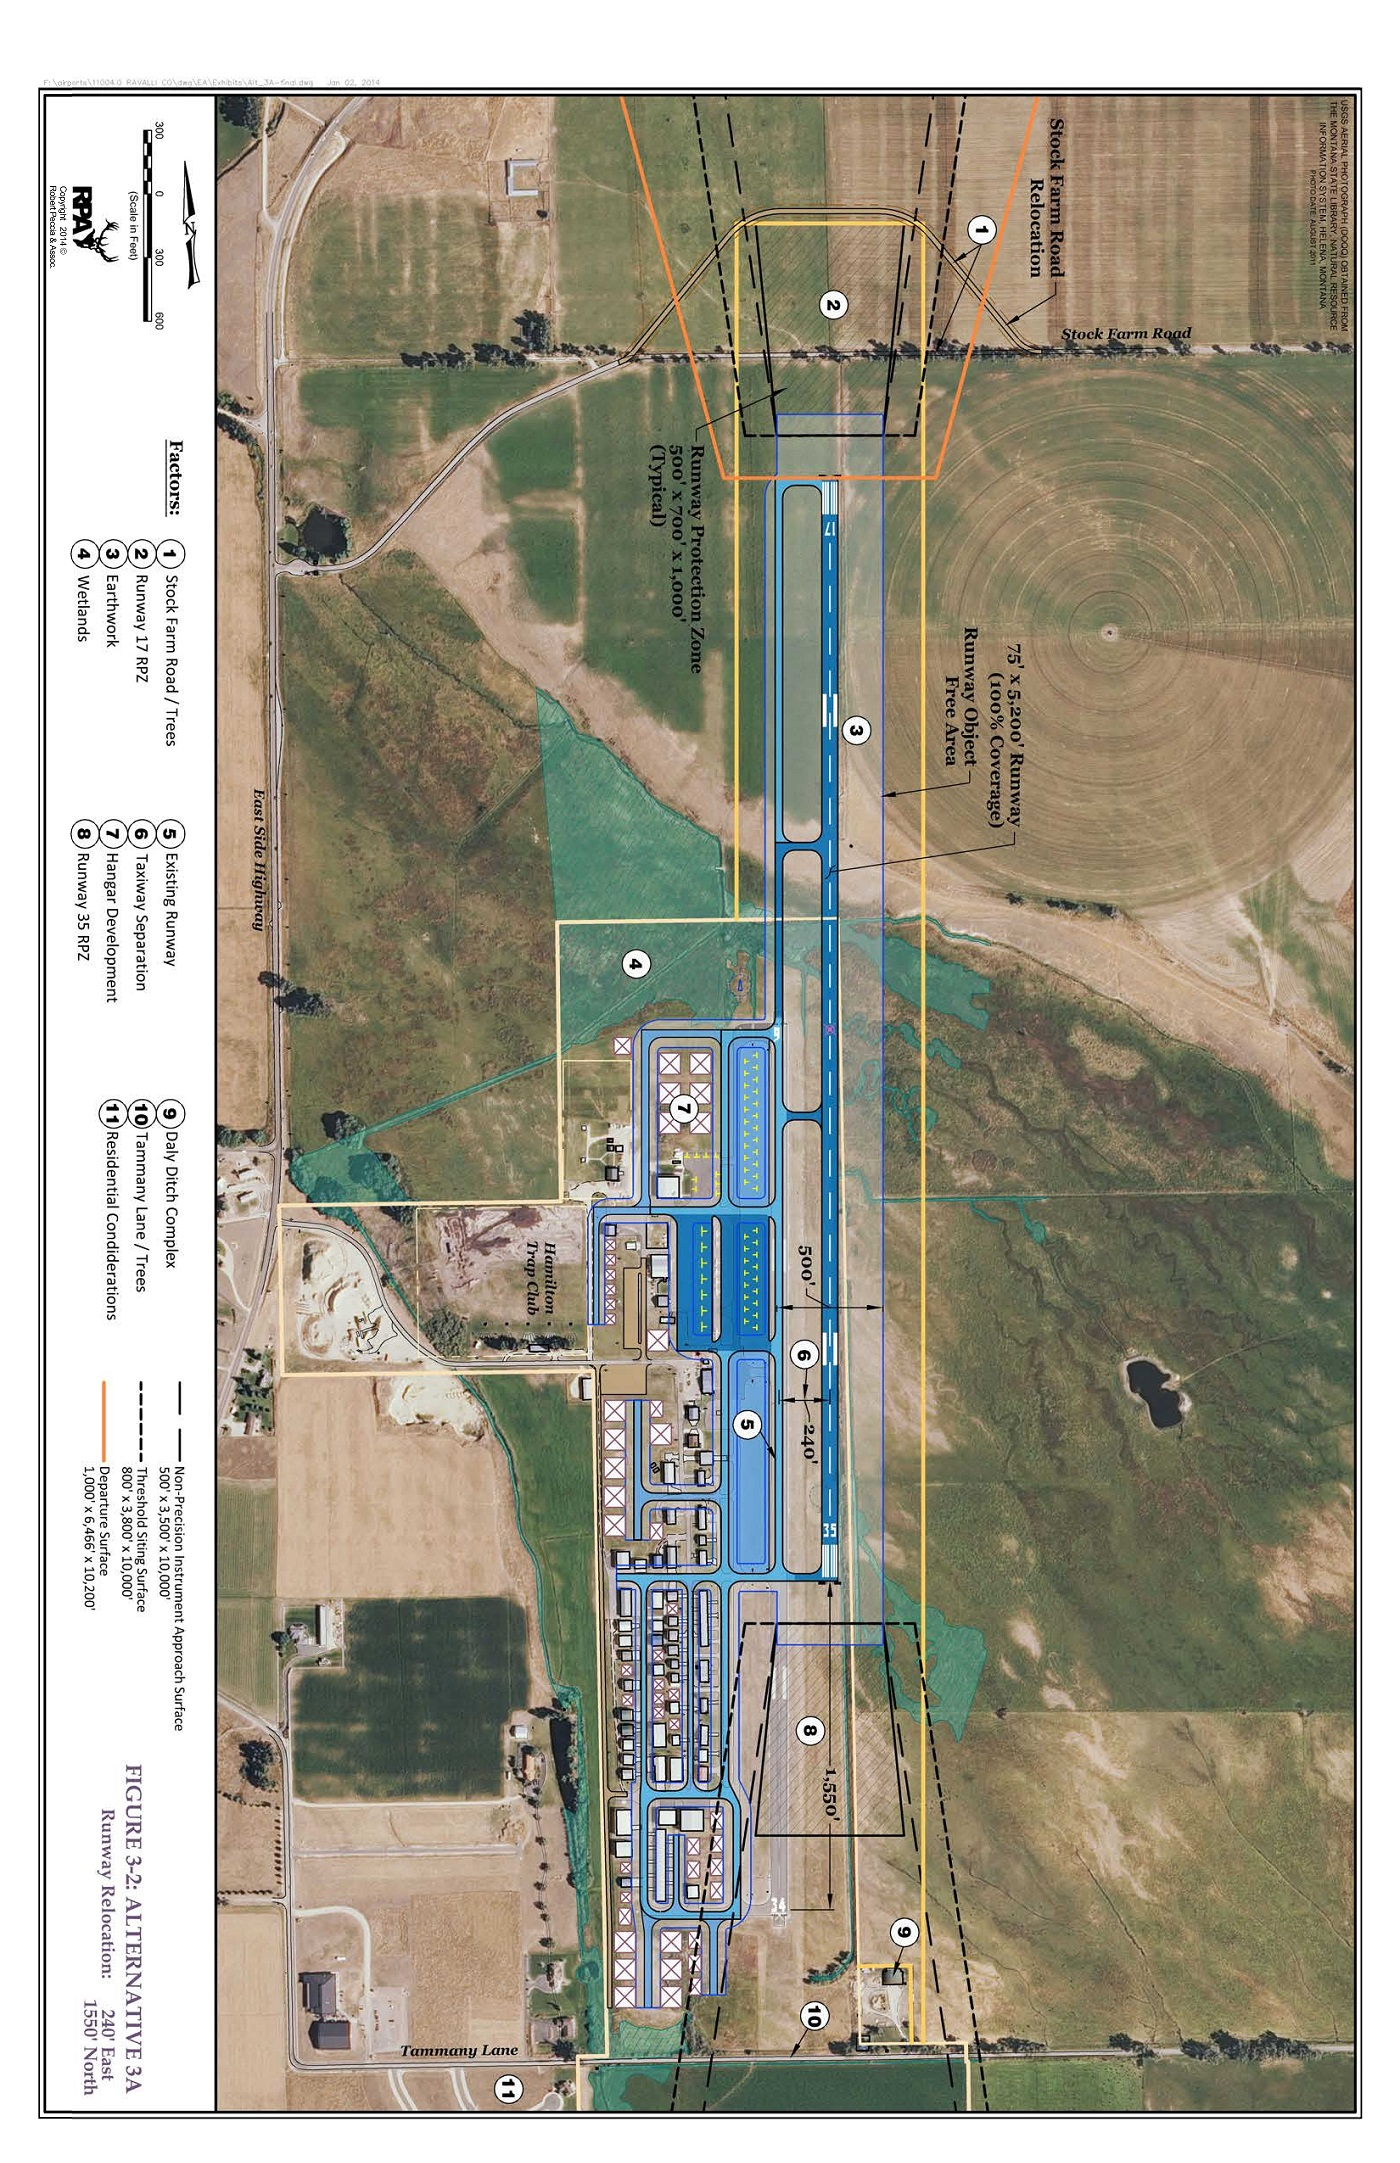 [6S5] proposed airport layout